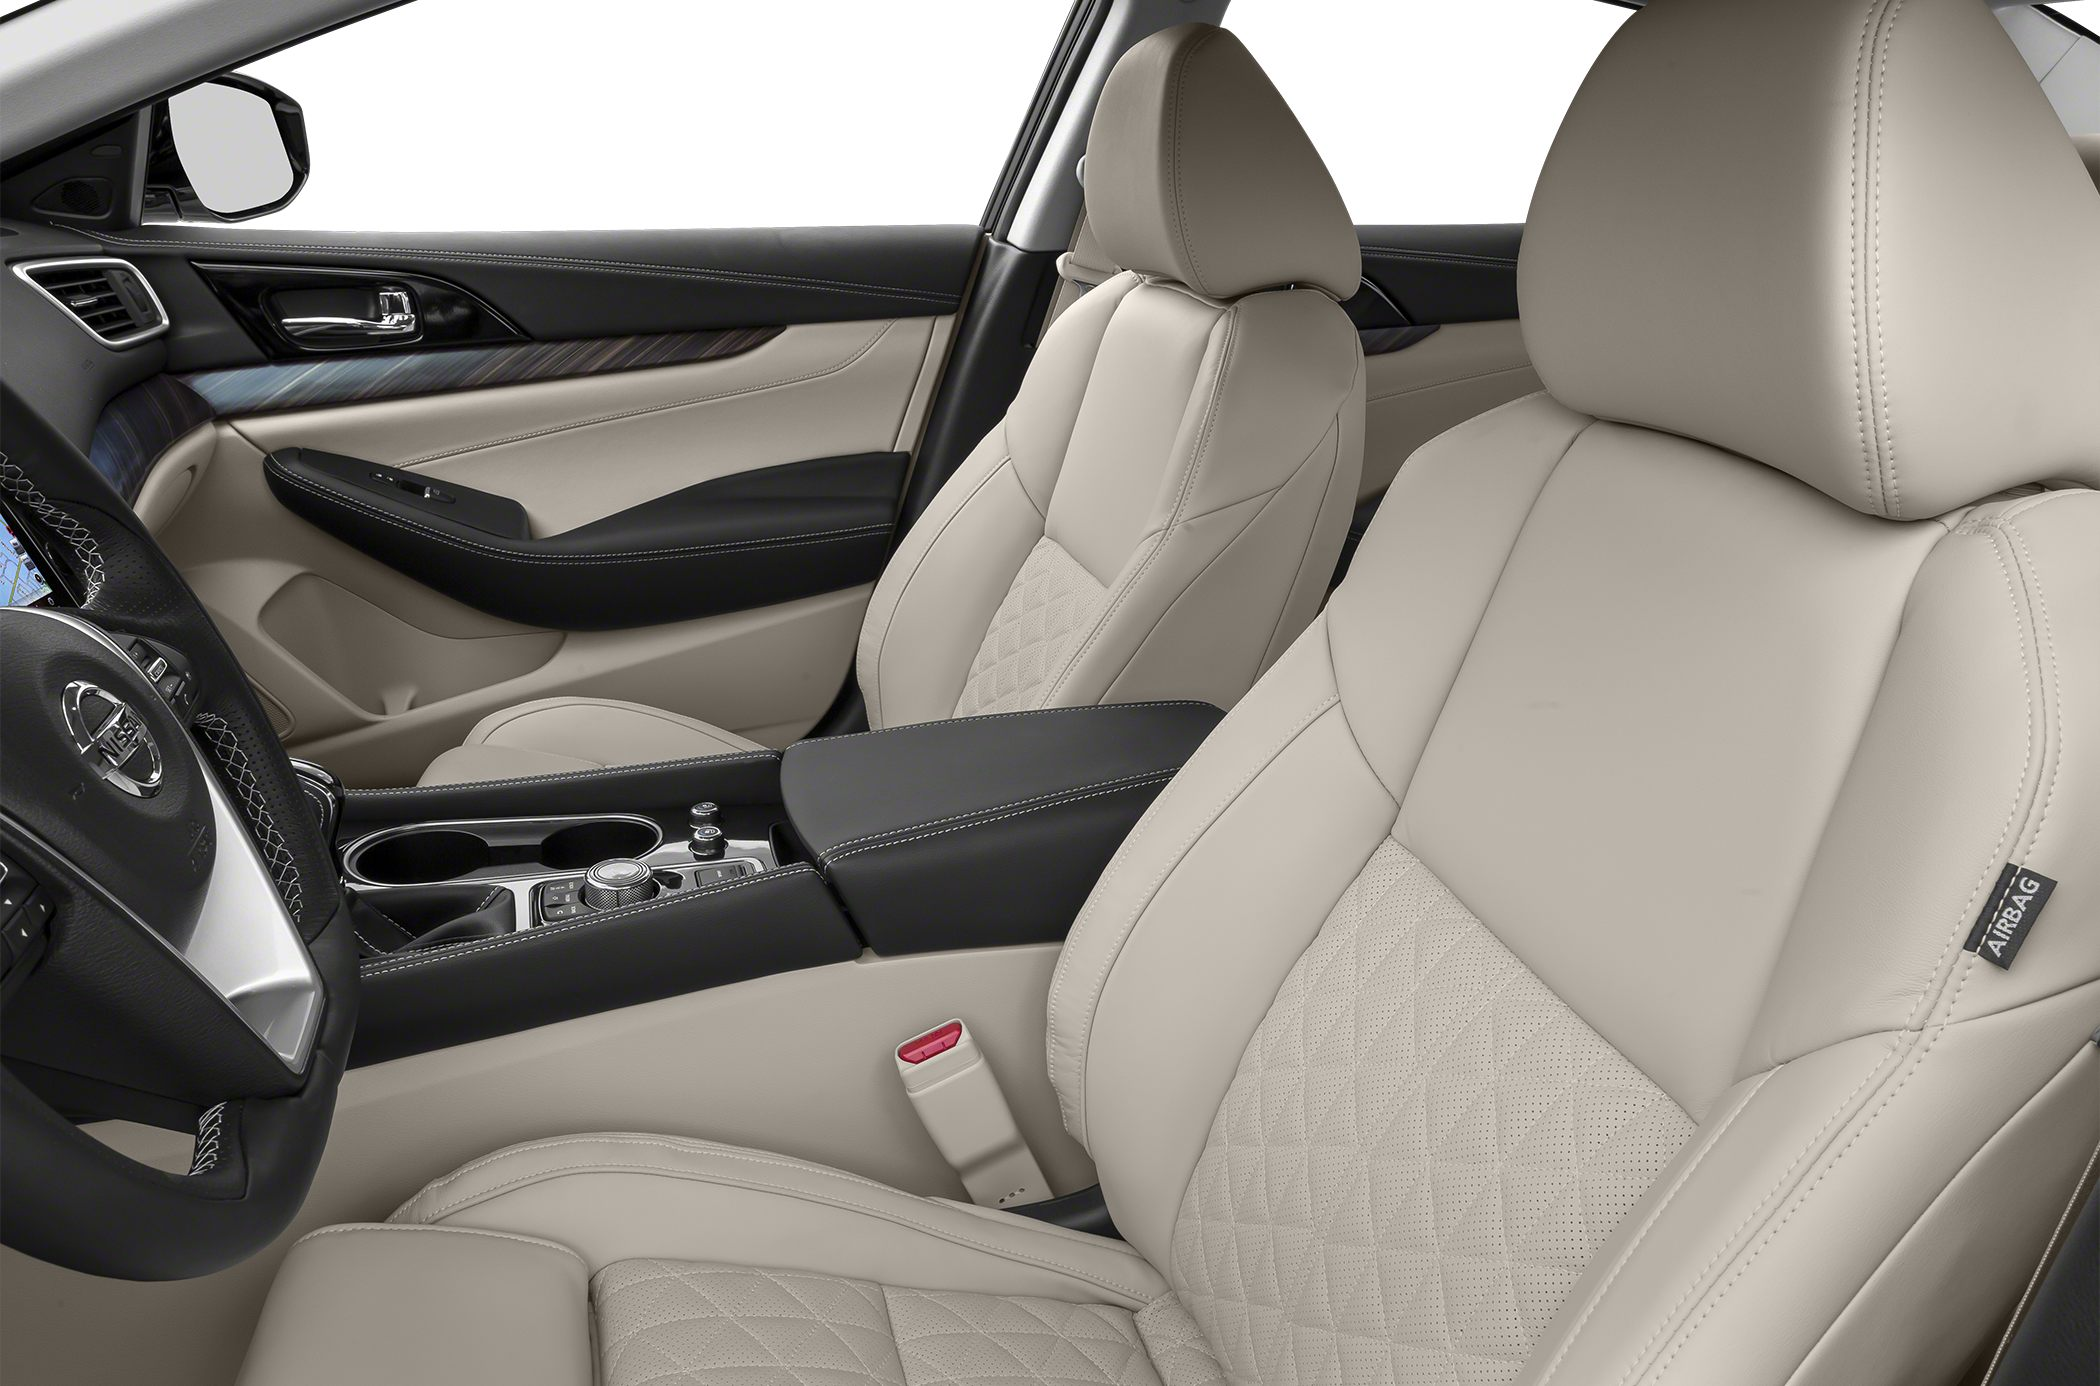 2017 nissan maxima deals prices incentives leases overview interior pros nissan maxima vanachro Images